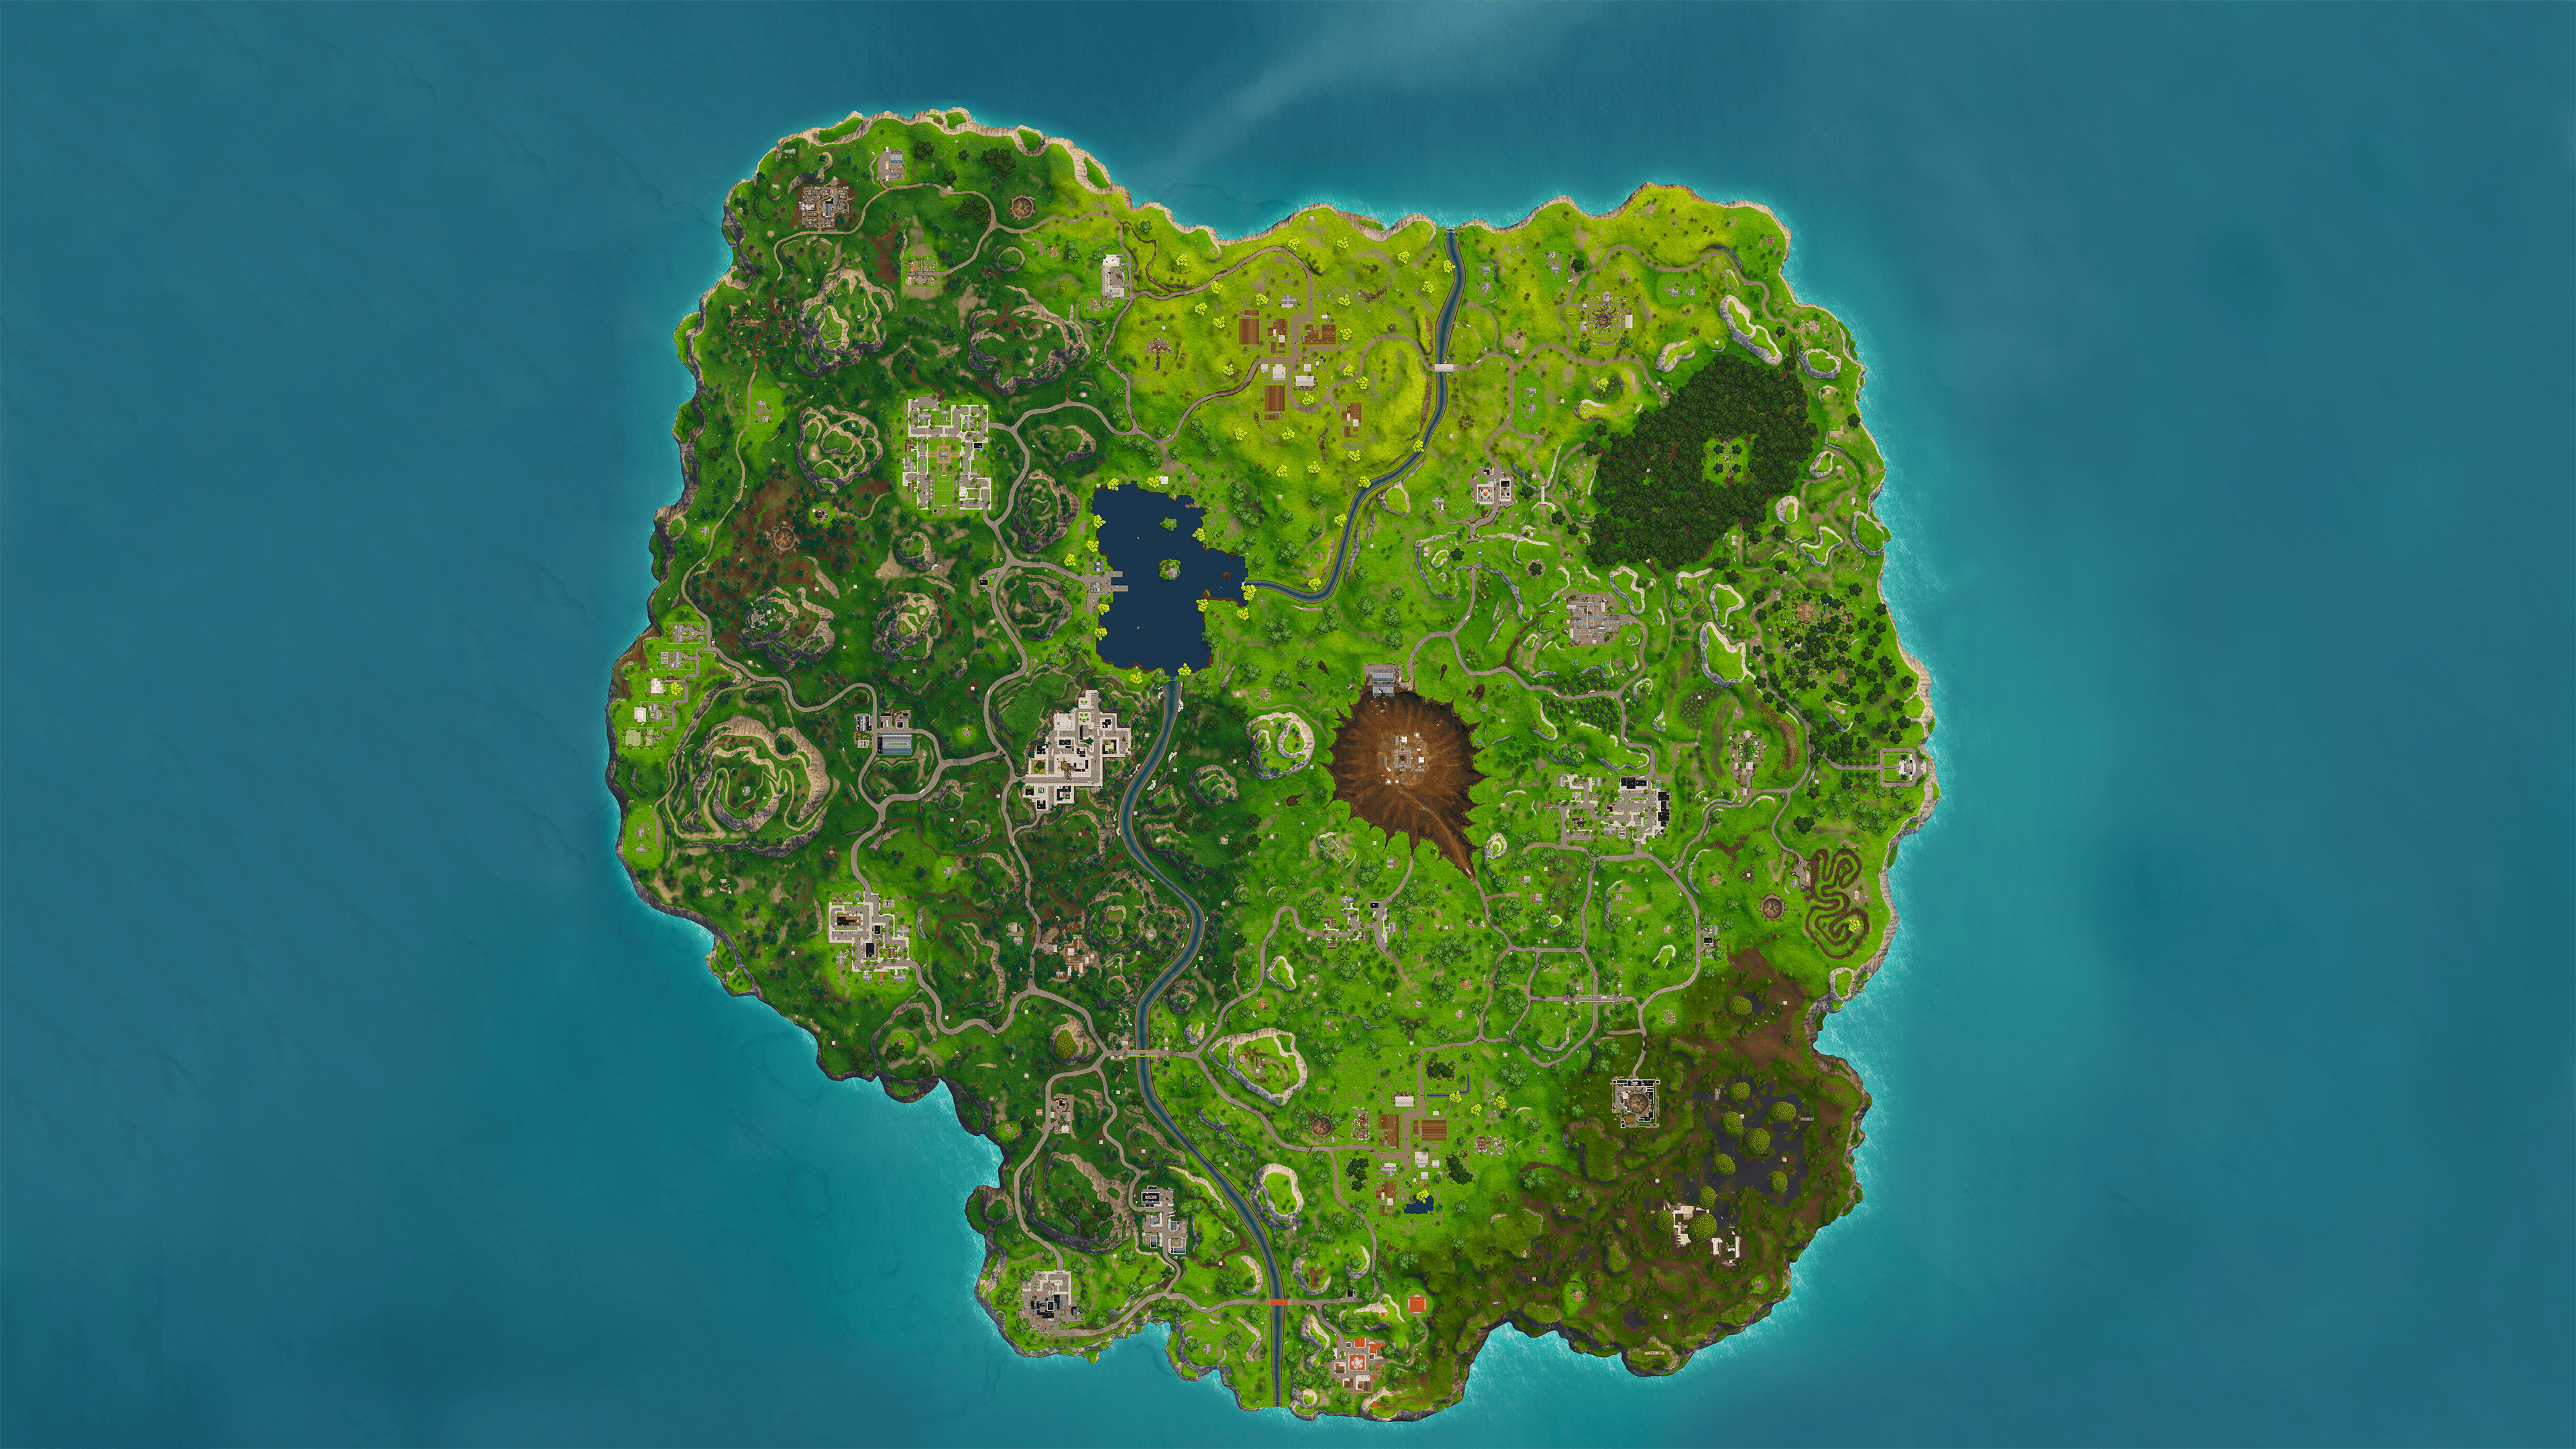 I made a 4K wallpapers of the high quality Season 4 map posted by u